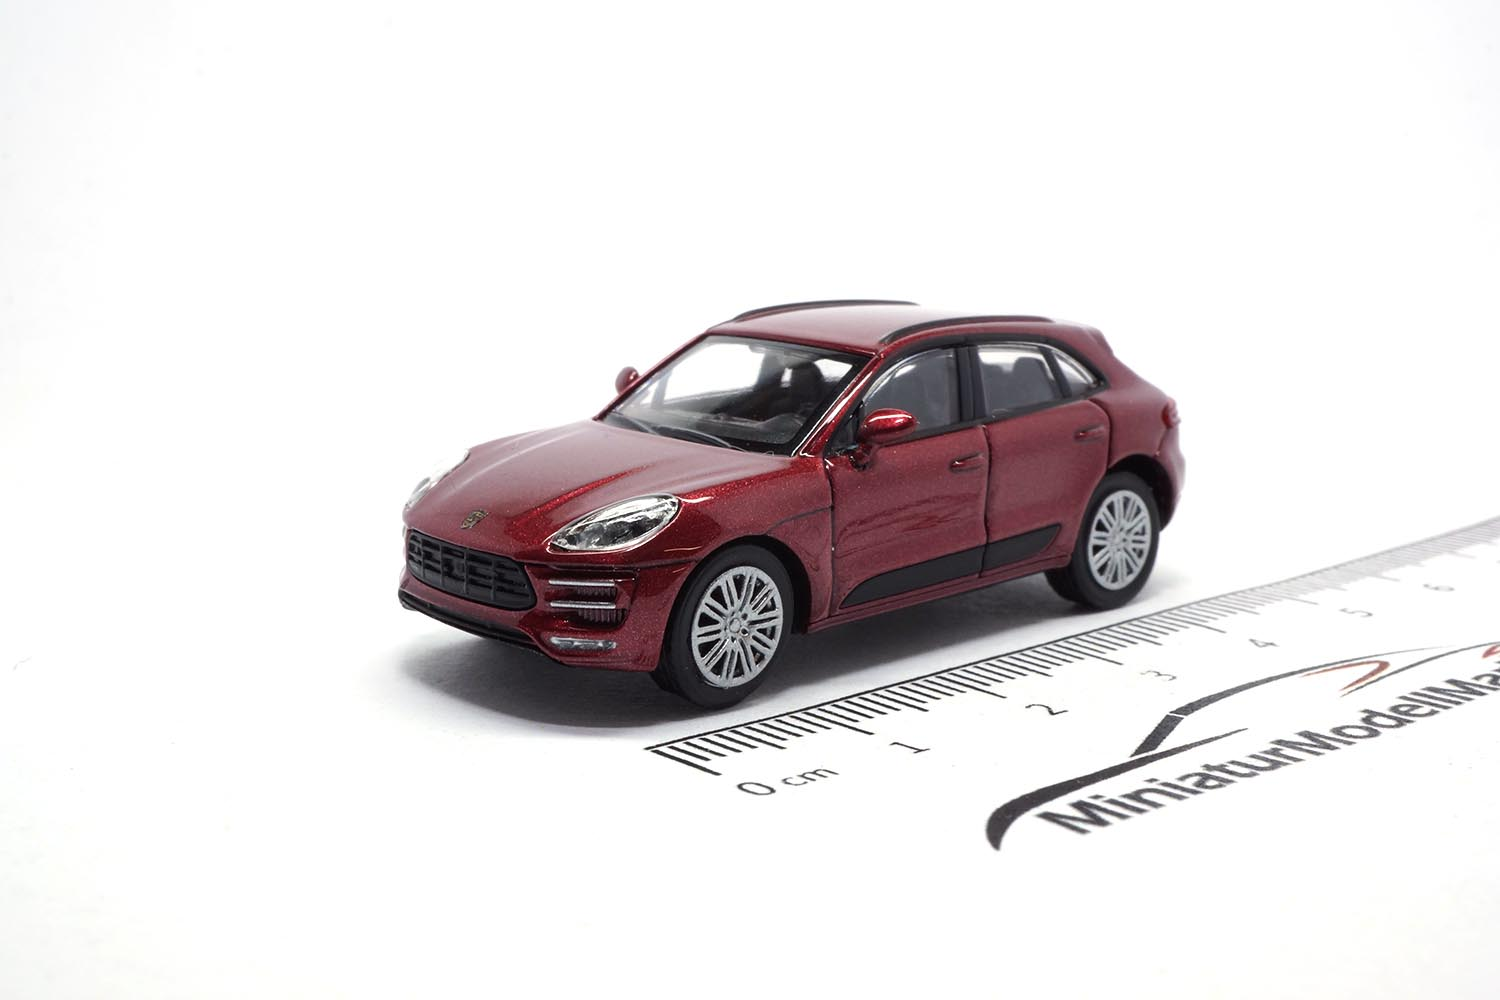 Minichamps 870067002 Porsche Macan Turbo - Rot Metallic 1:87